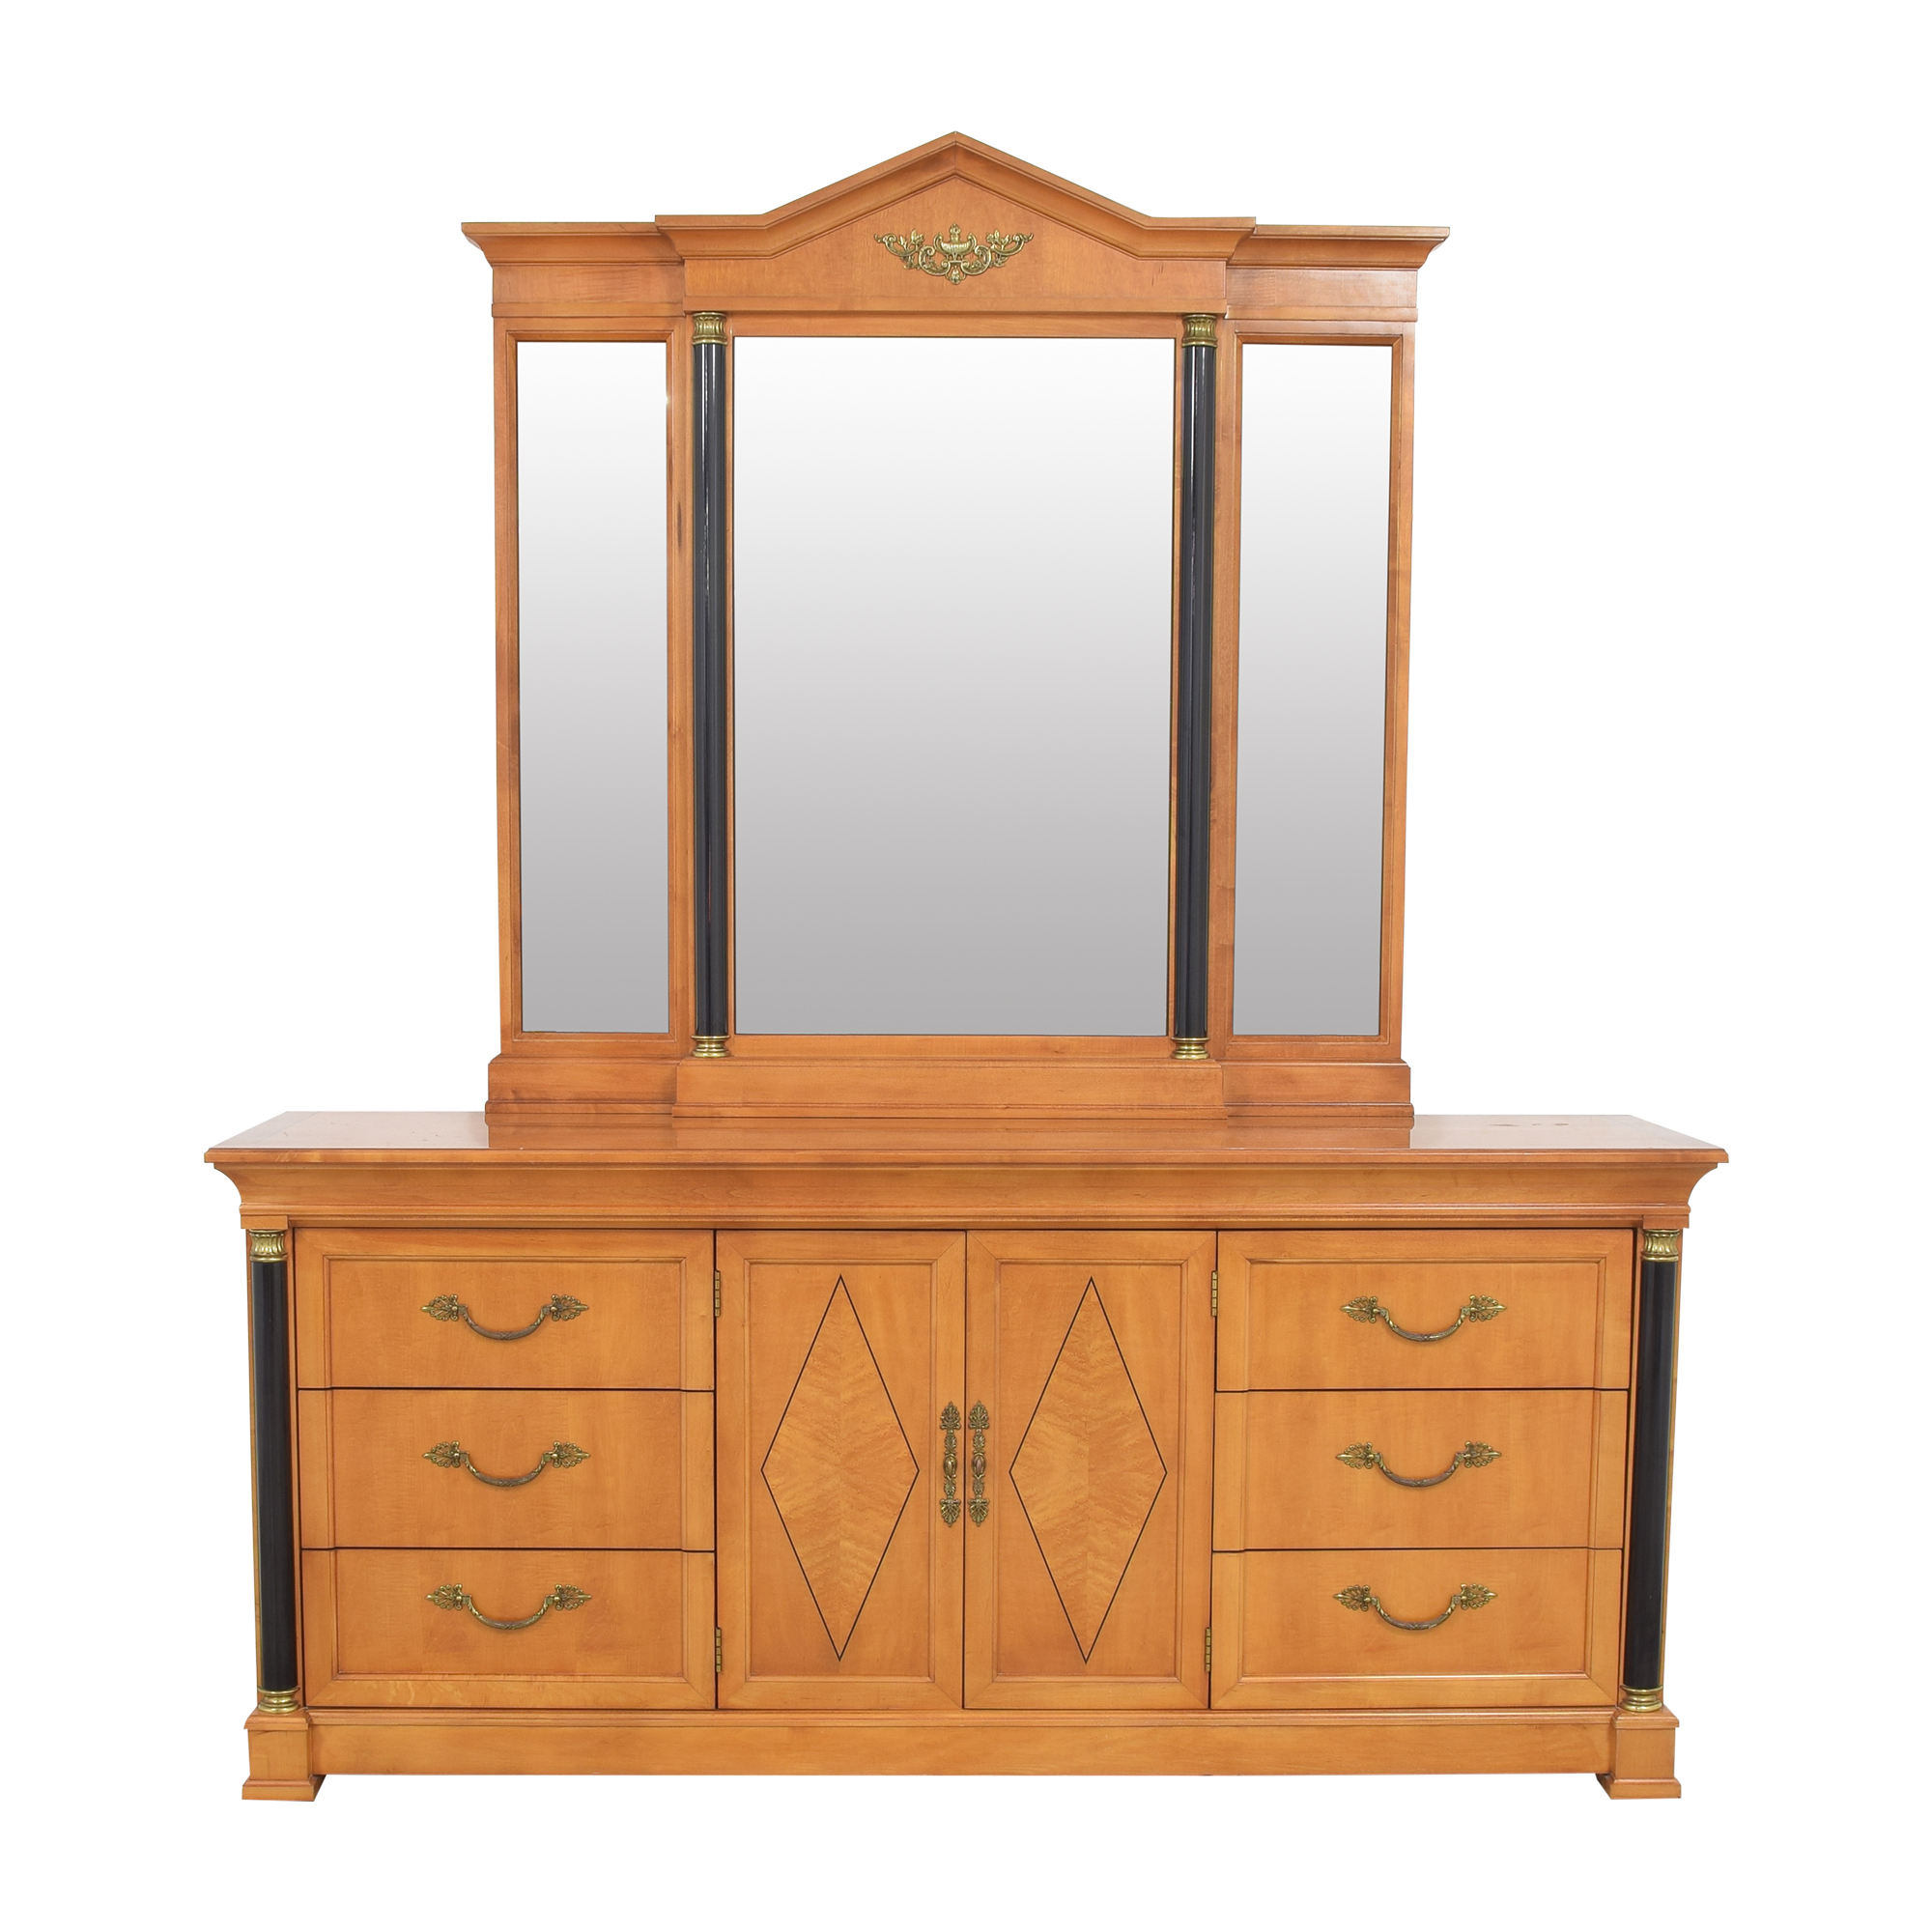 Thomasville Thomasville Grand Classics Biedermeier Triple Dresser with Mirror nj